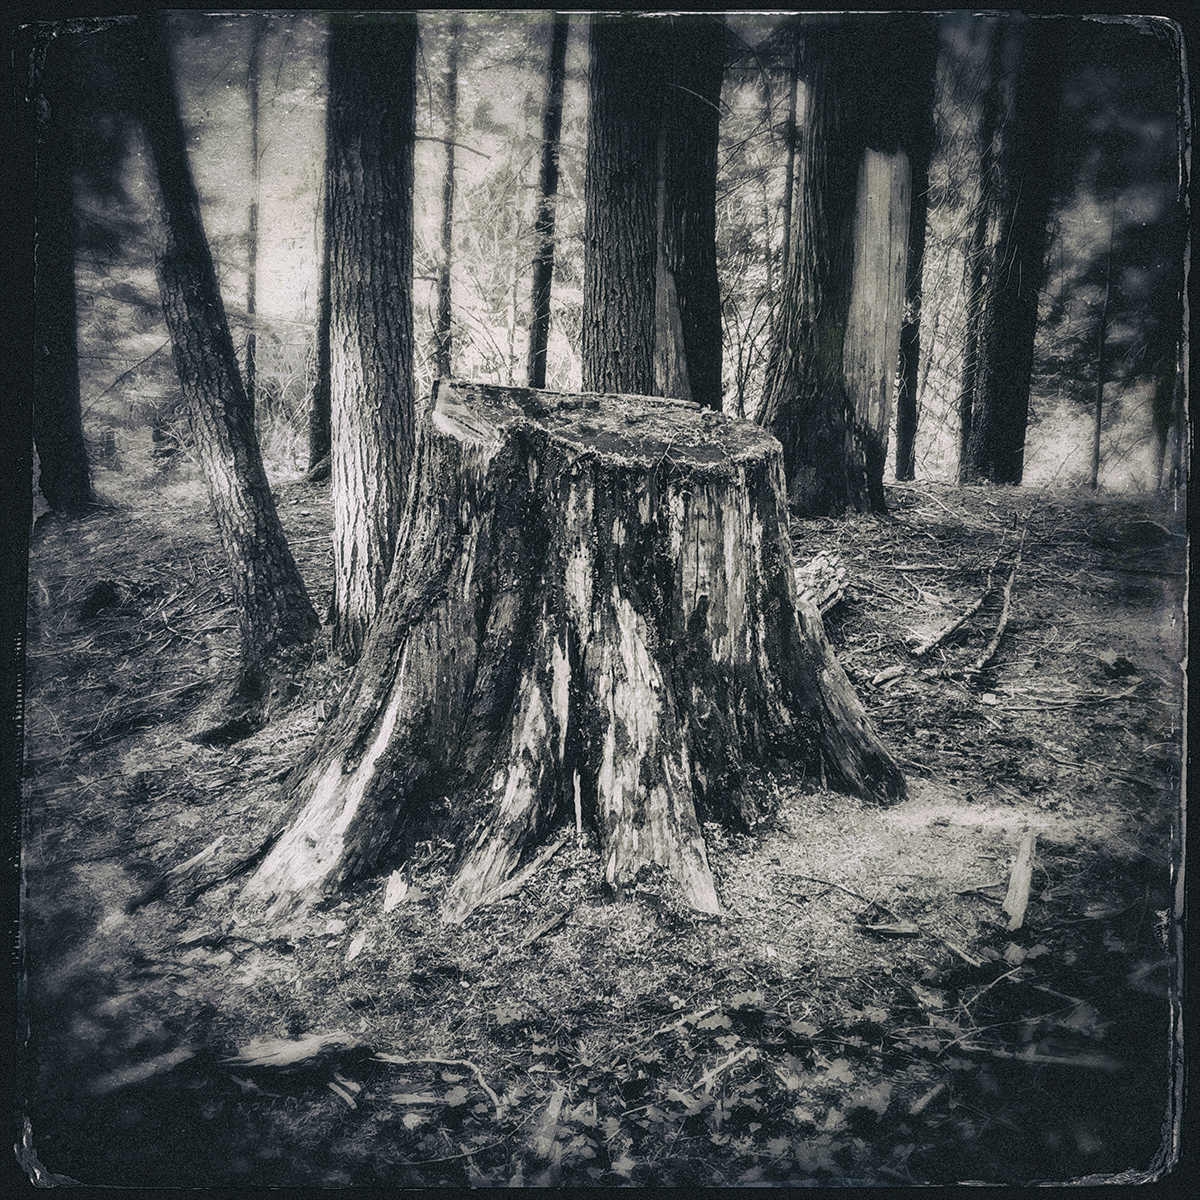 Forest of Lost Trees 2 72dpi .jpg